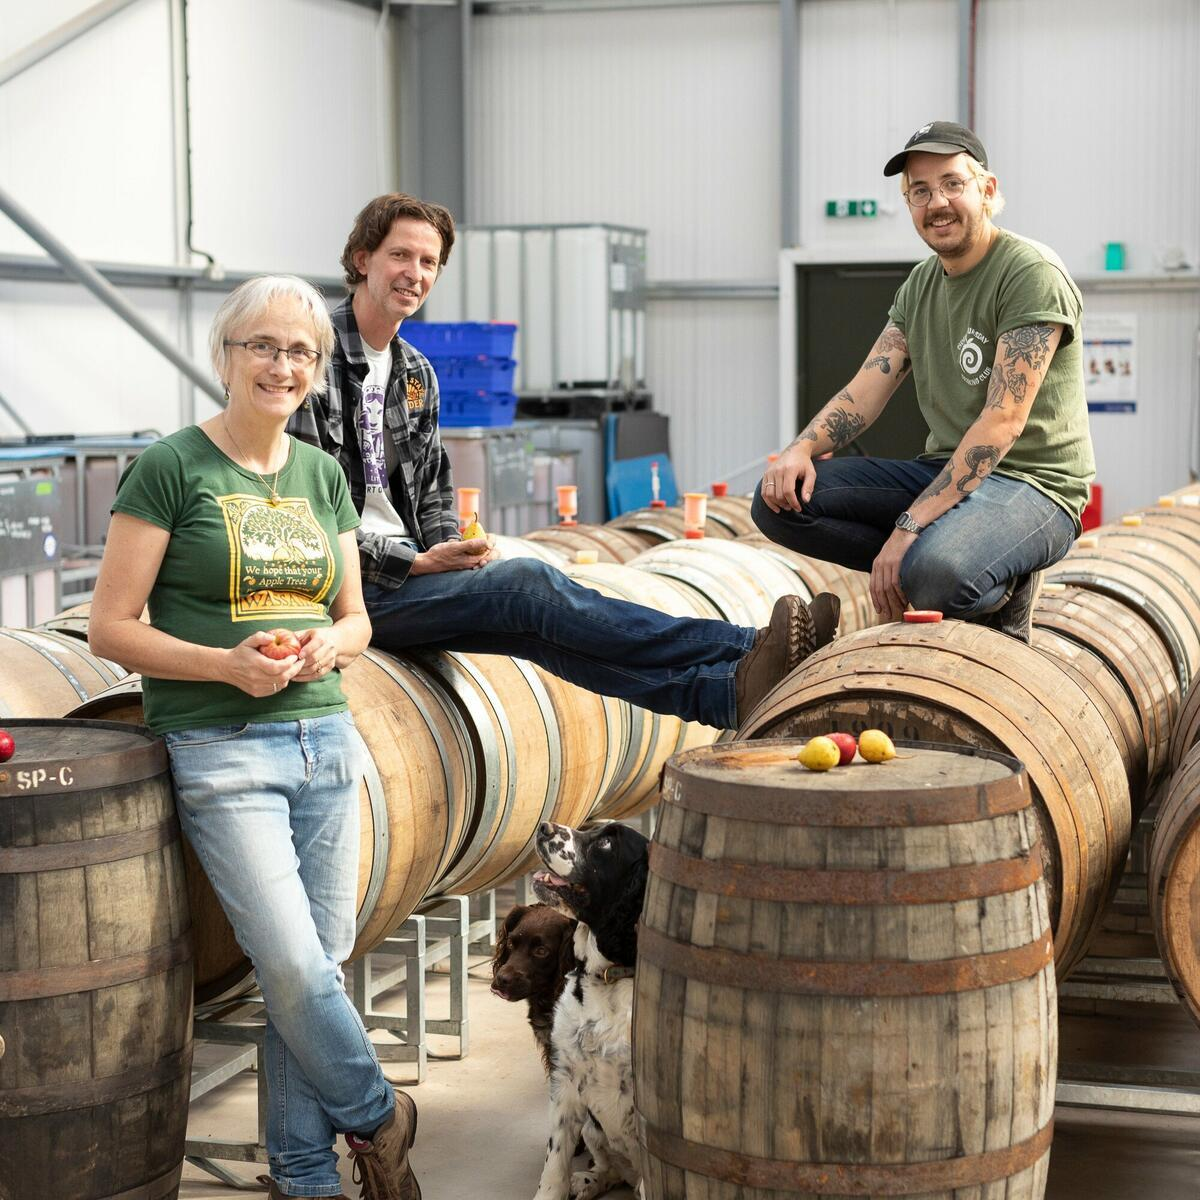 Meet the makers 🍎 Take a tour to go behind the scenes into the cidery